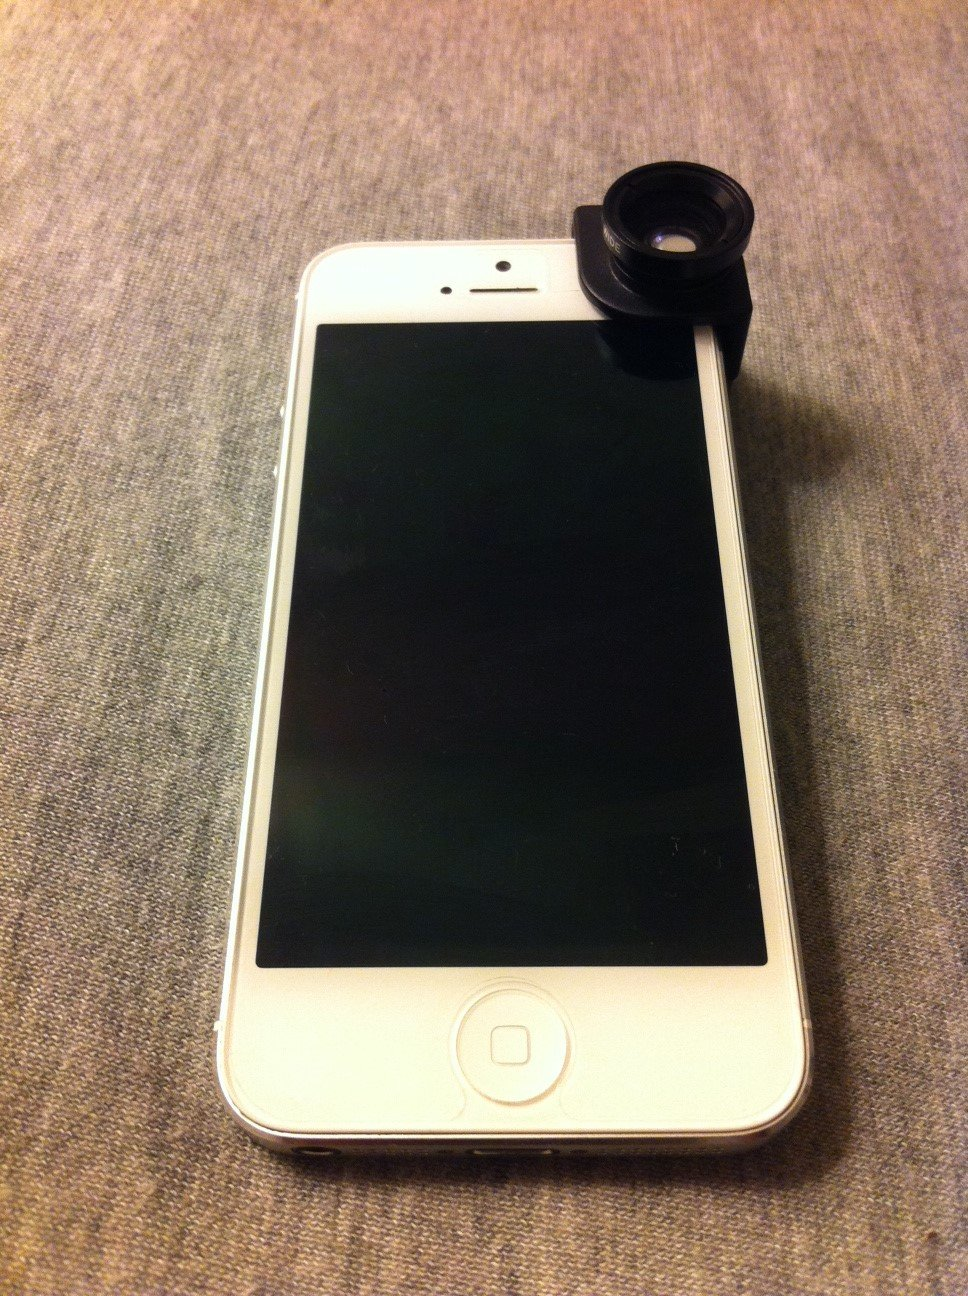 kit objectif iphone 5 avant.JPG - Test : Kit objectif photo 3 en 1 pour iPhone 5